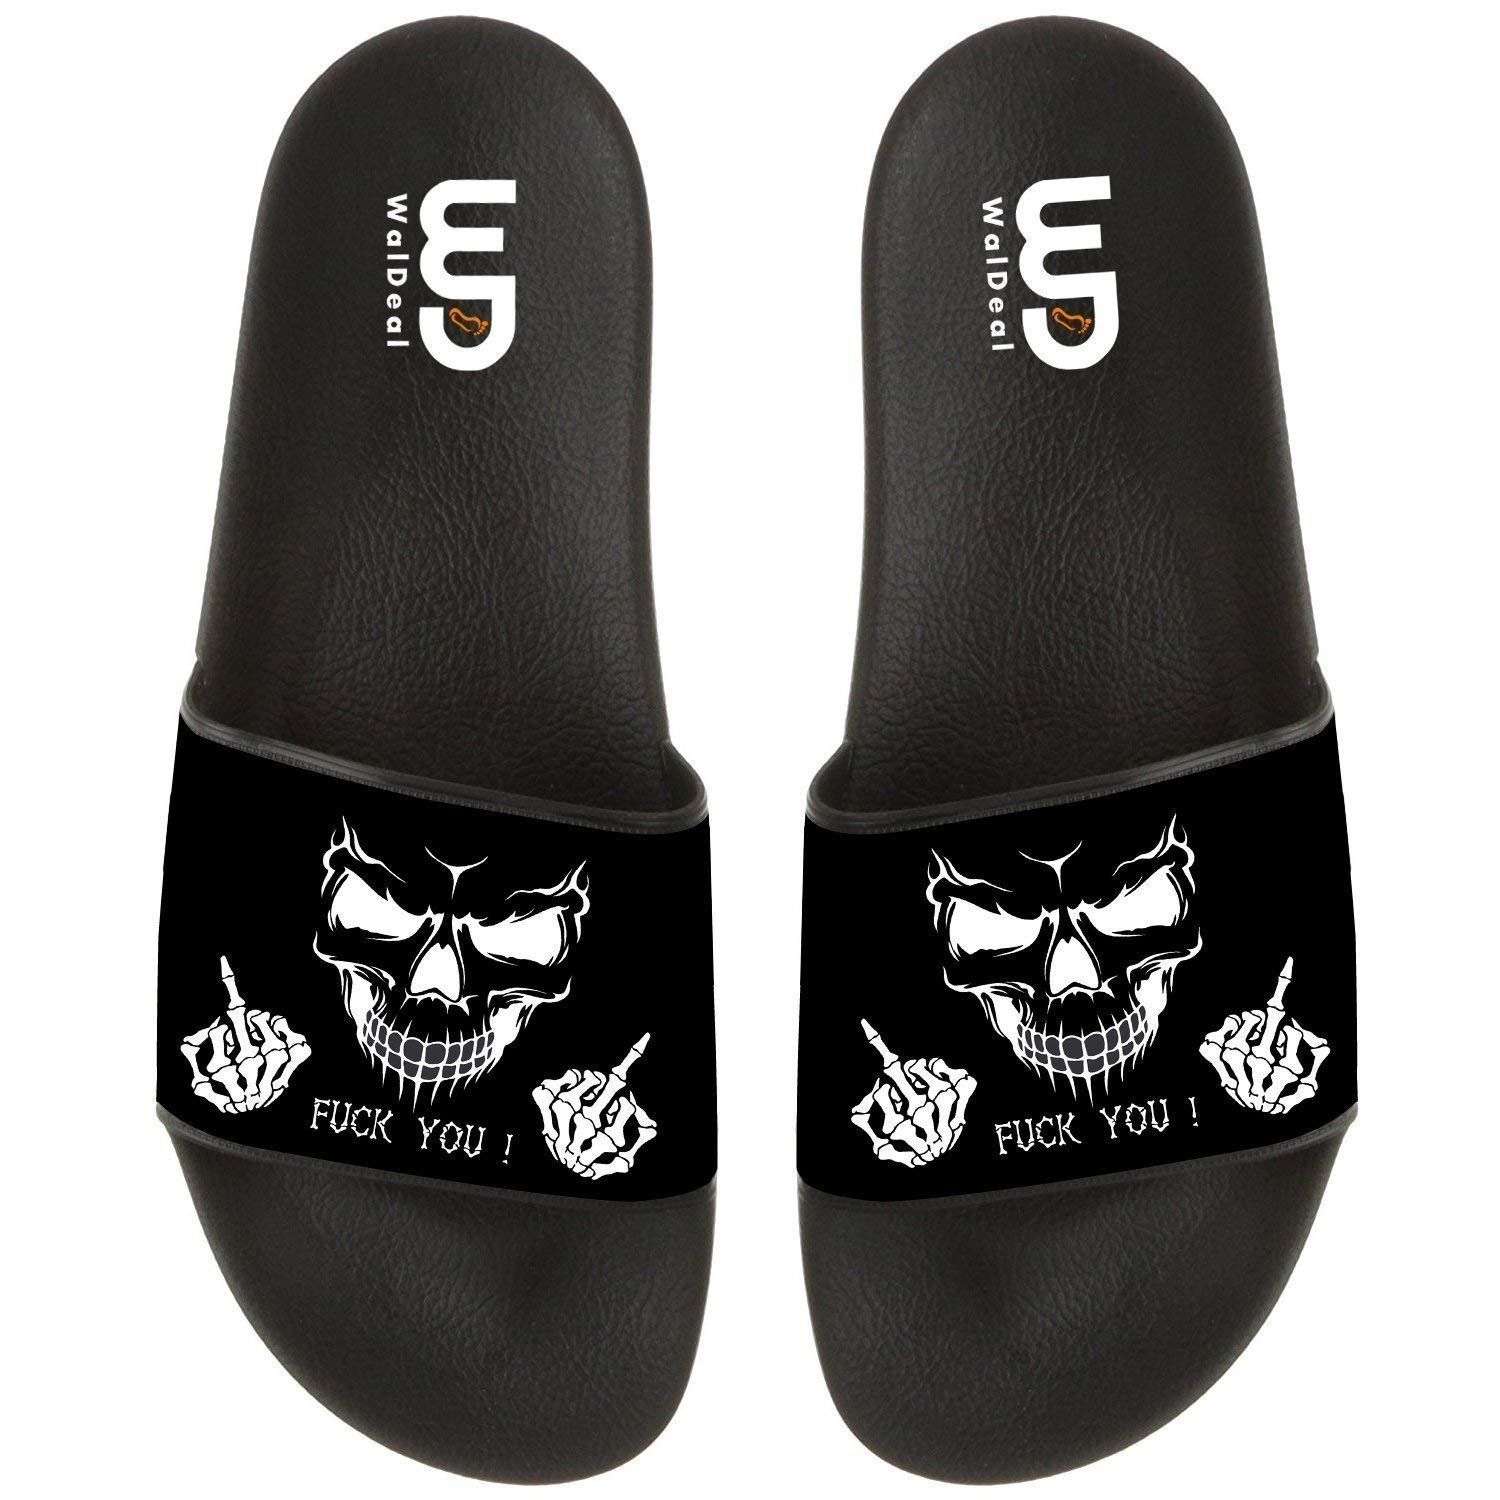 76bf74755567 Originalheart funny skull fuck you print summer casual slide jpg 1500x1500  Skull baby shoes sandals